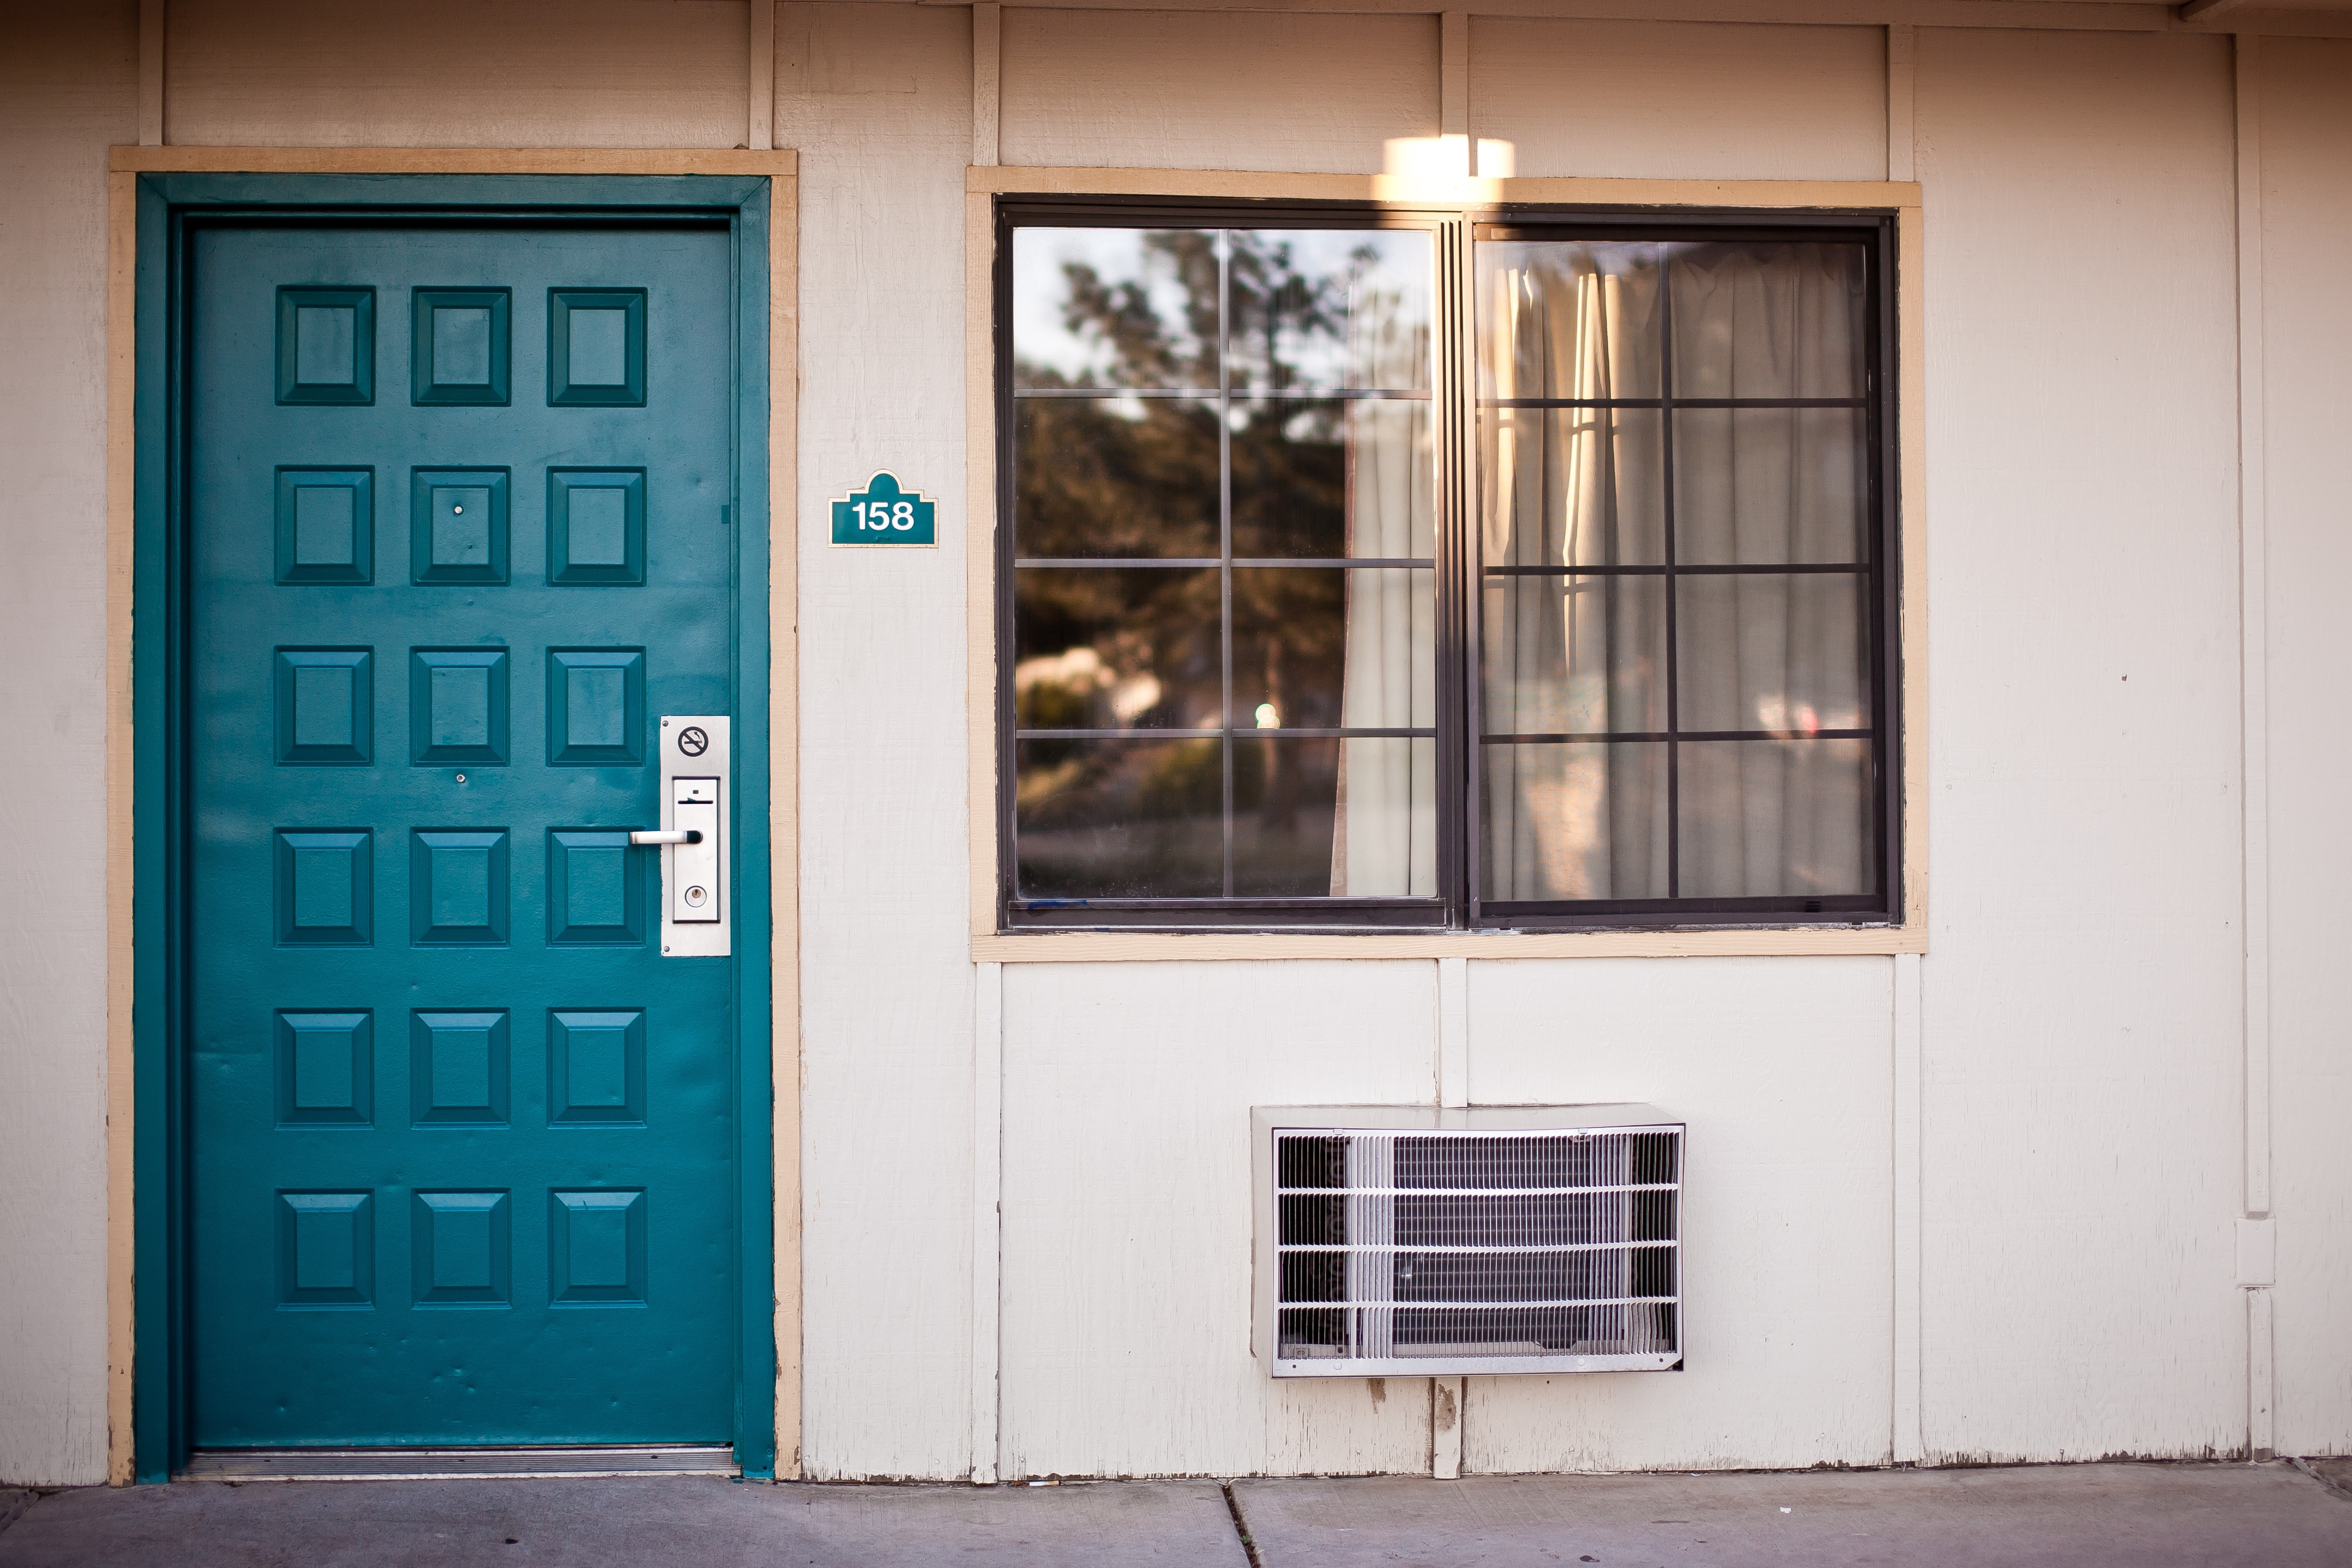 Awesome Door Images 183 Pexels 183 Free Stock Photos